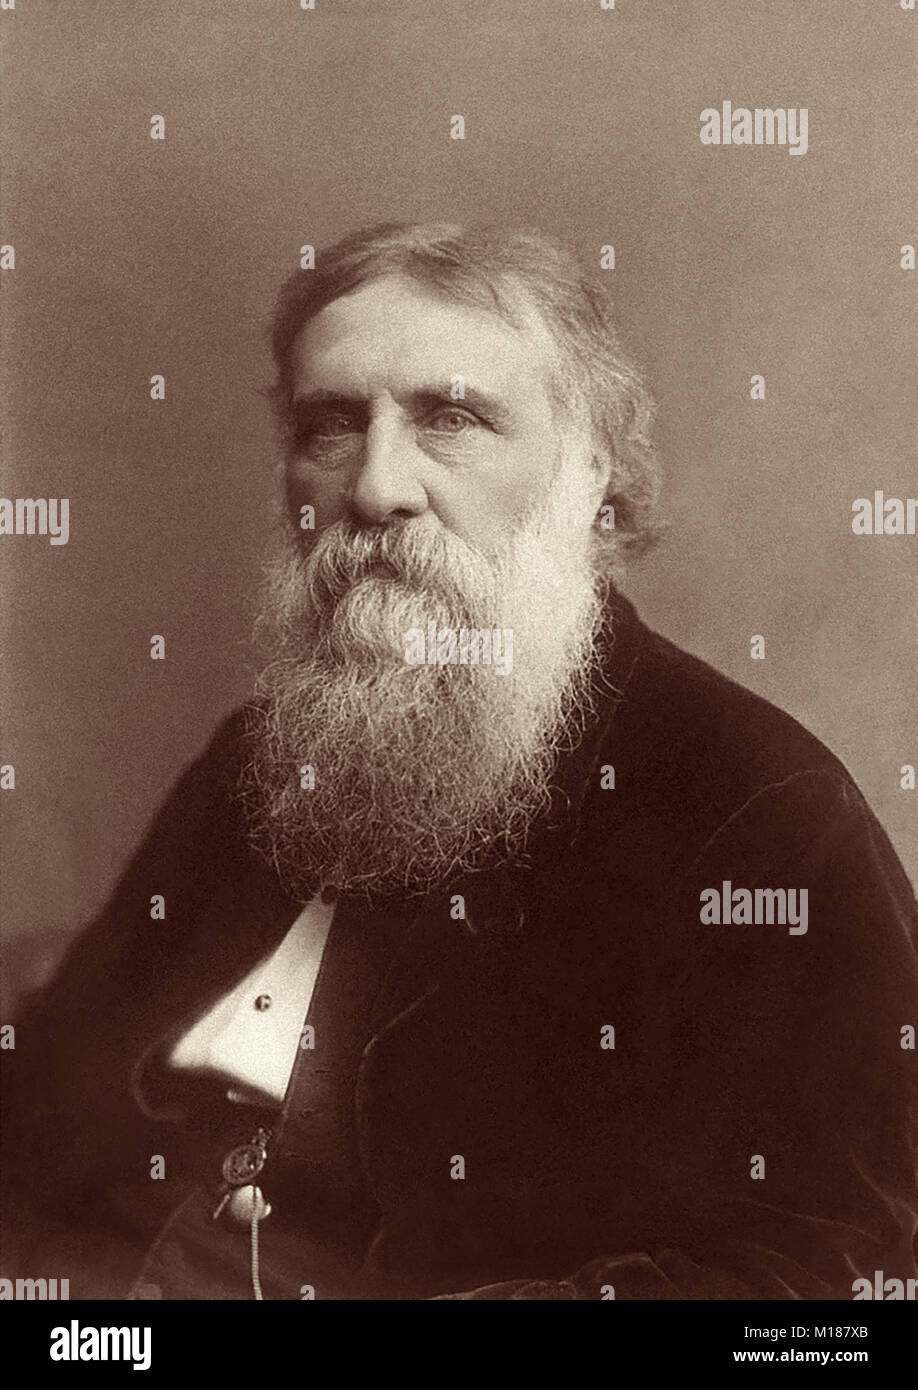 George MacDonald (1824-1905) was a Scottish writer and Christian minister who was a literary influence on CS Lewis, - Stock Image